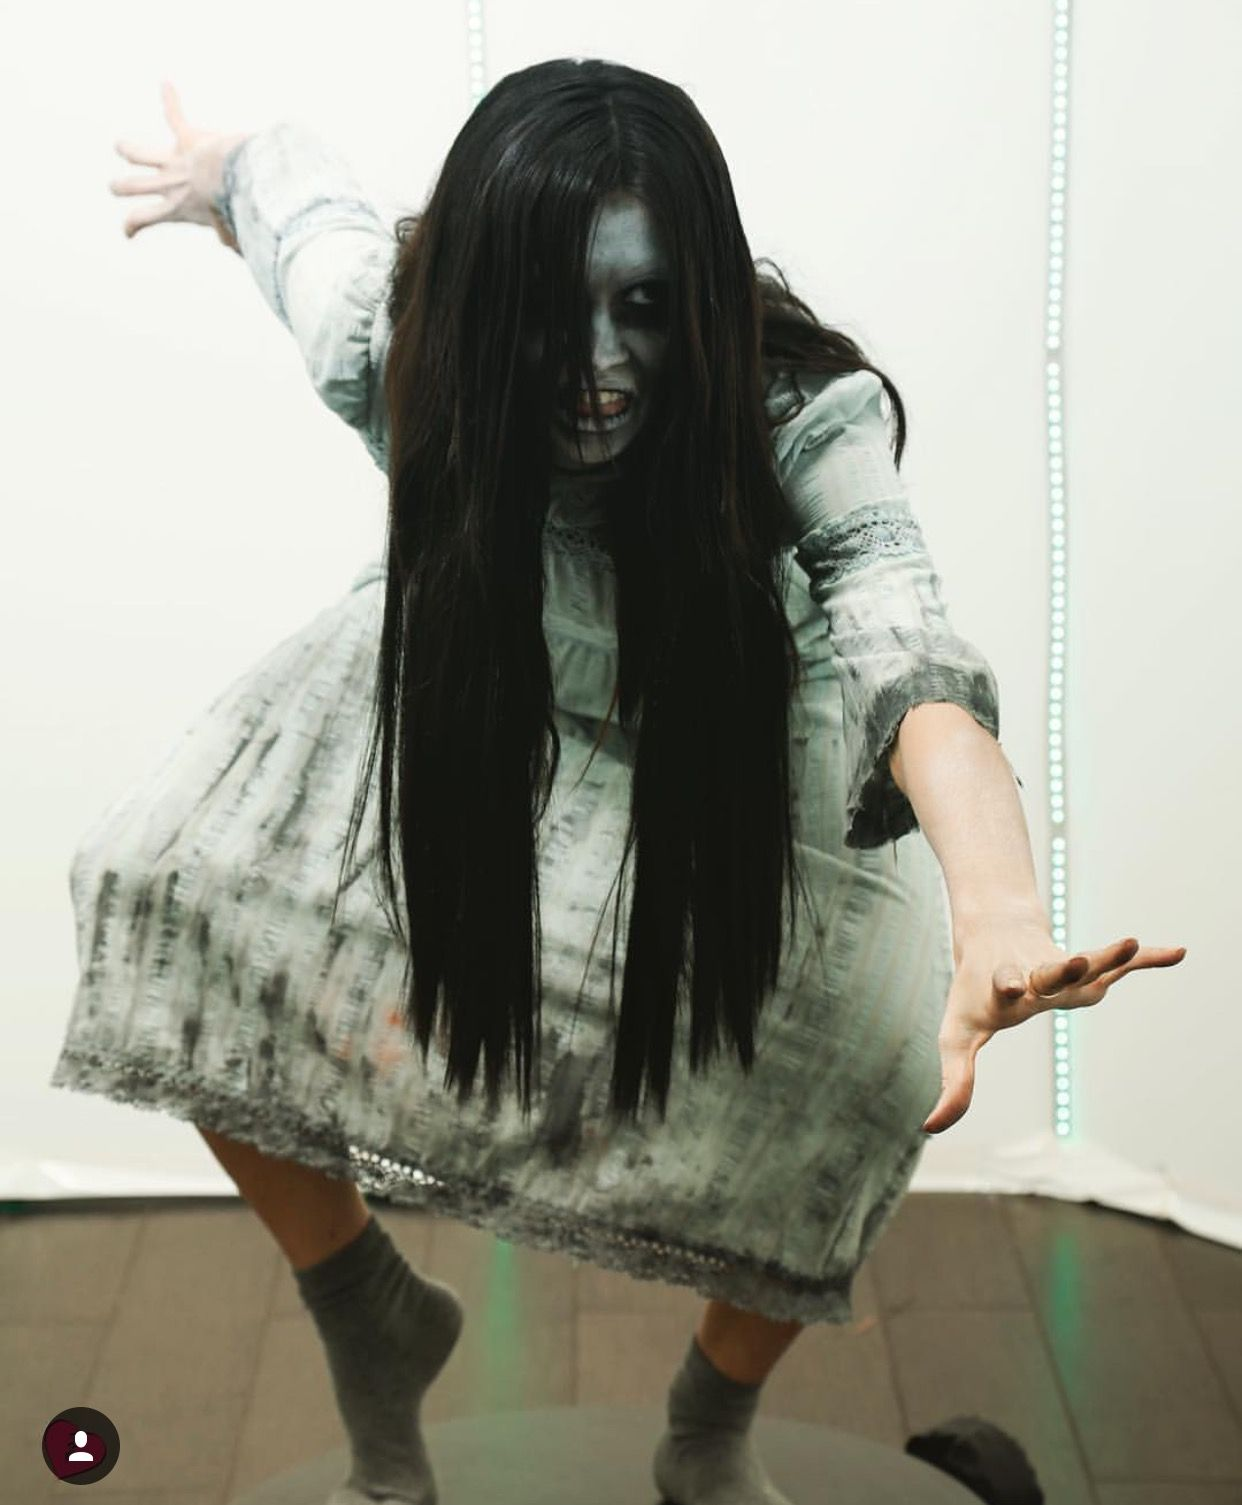 Pin By Sarah Harb On Halloween Costumes (With Images